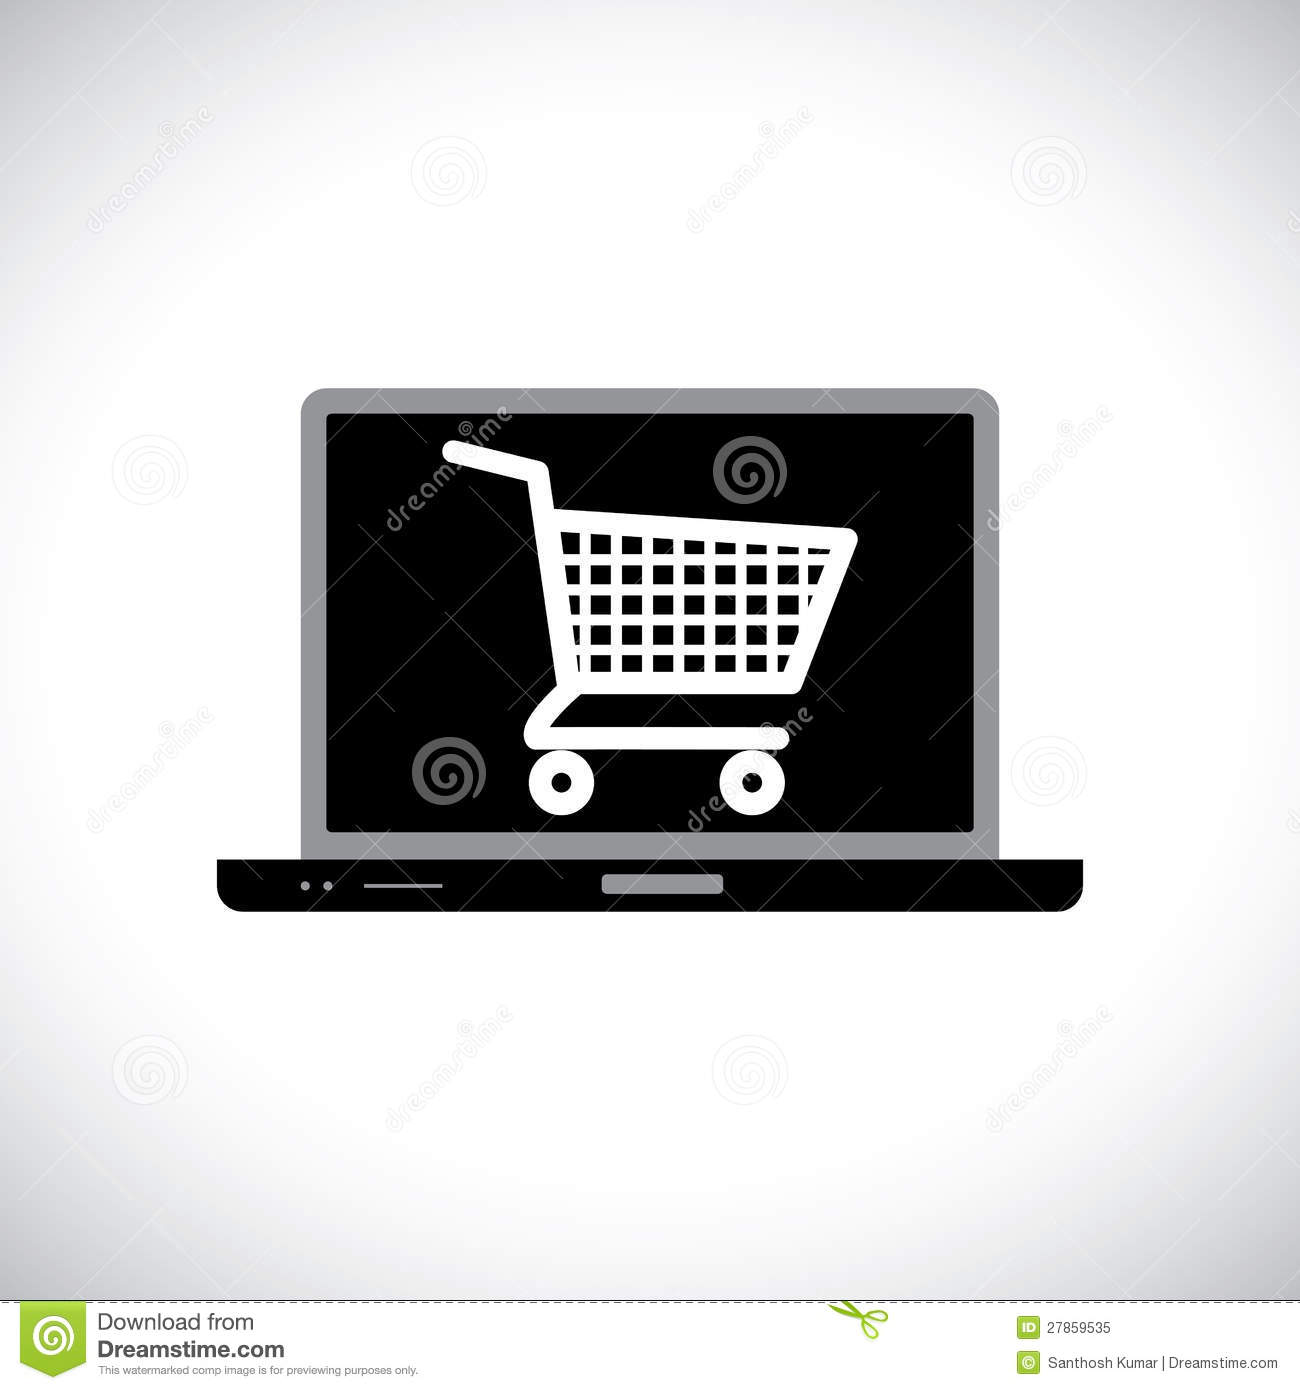 Buying or shopping online using computer